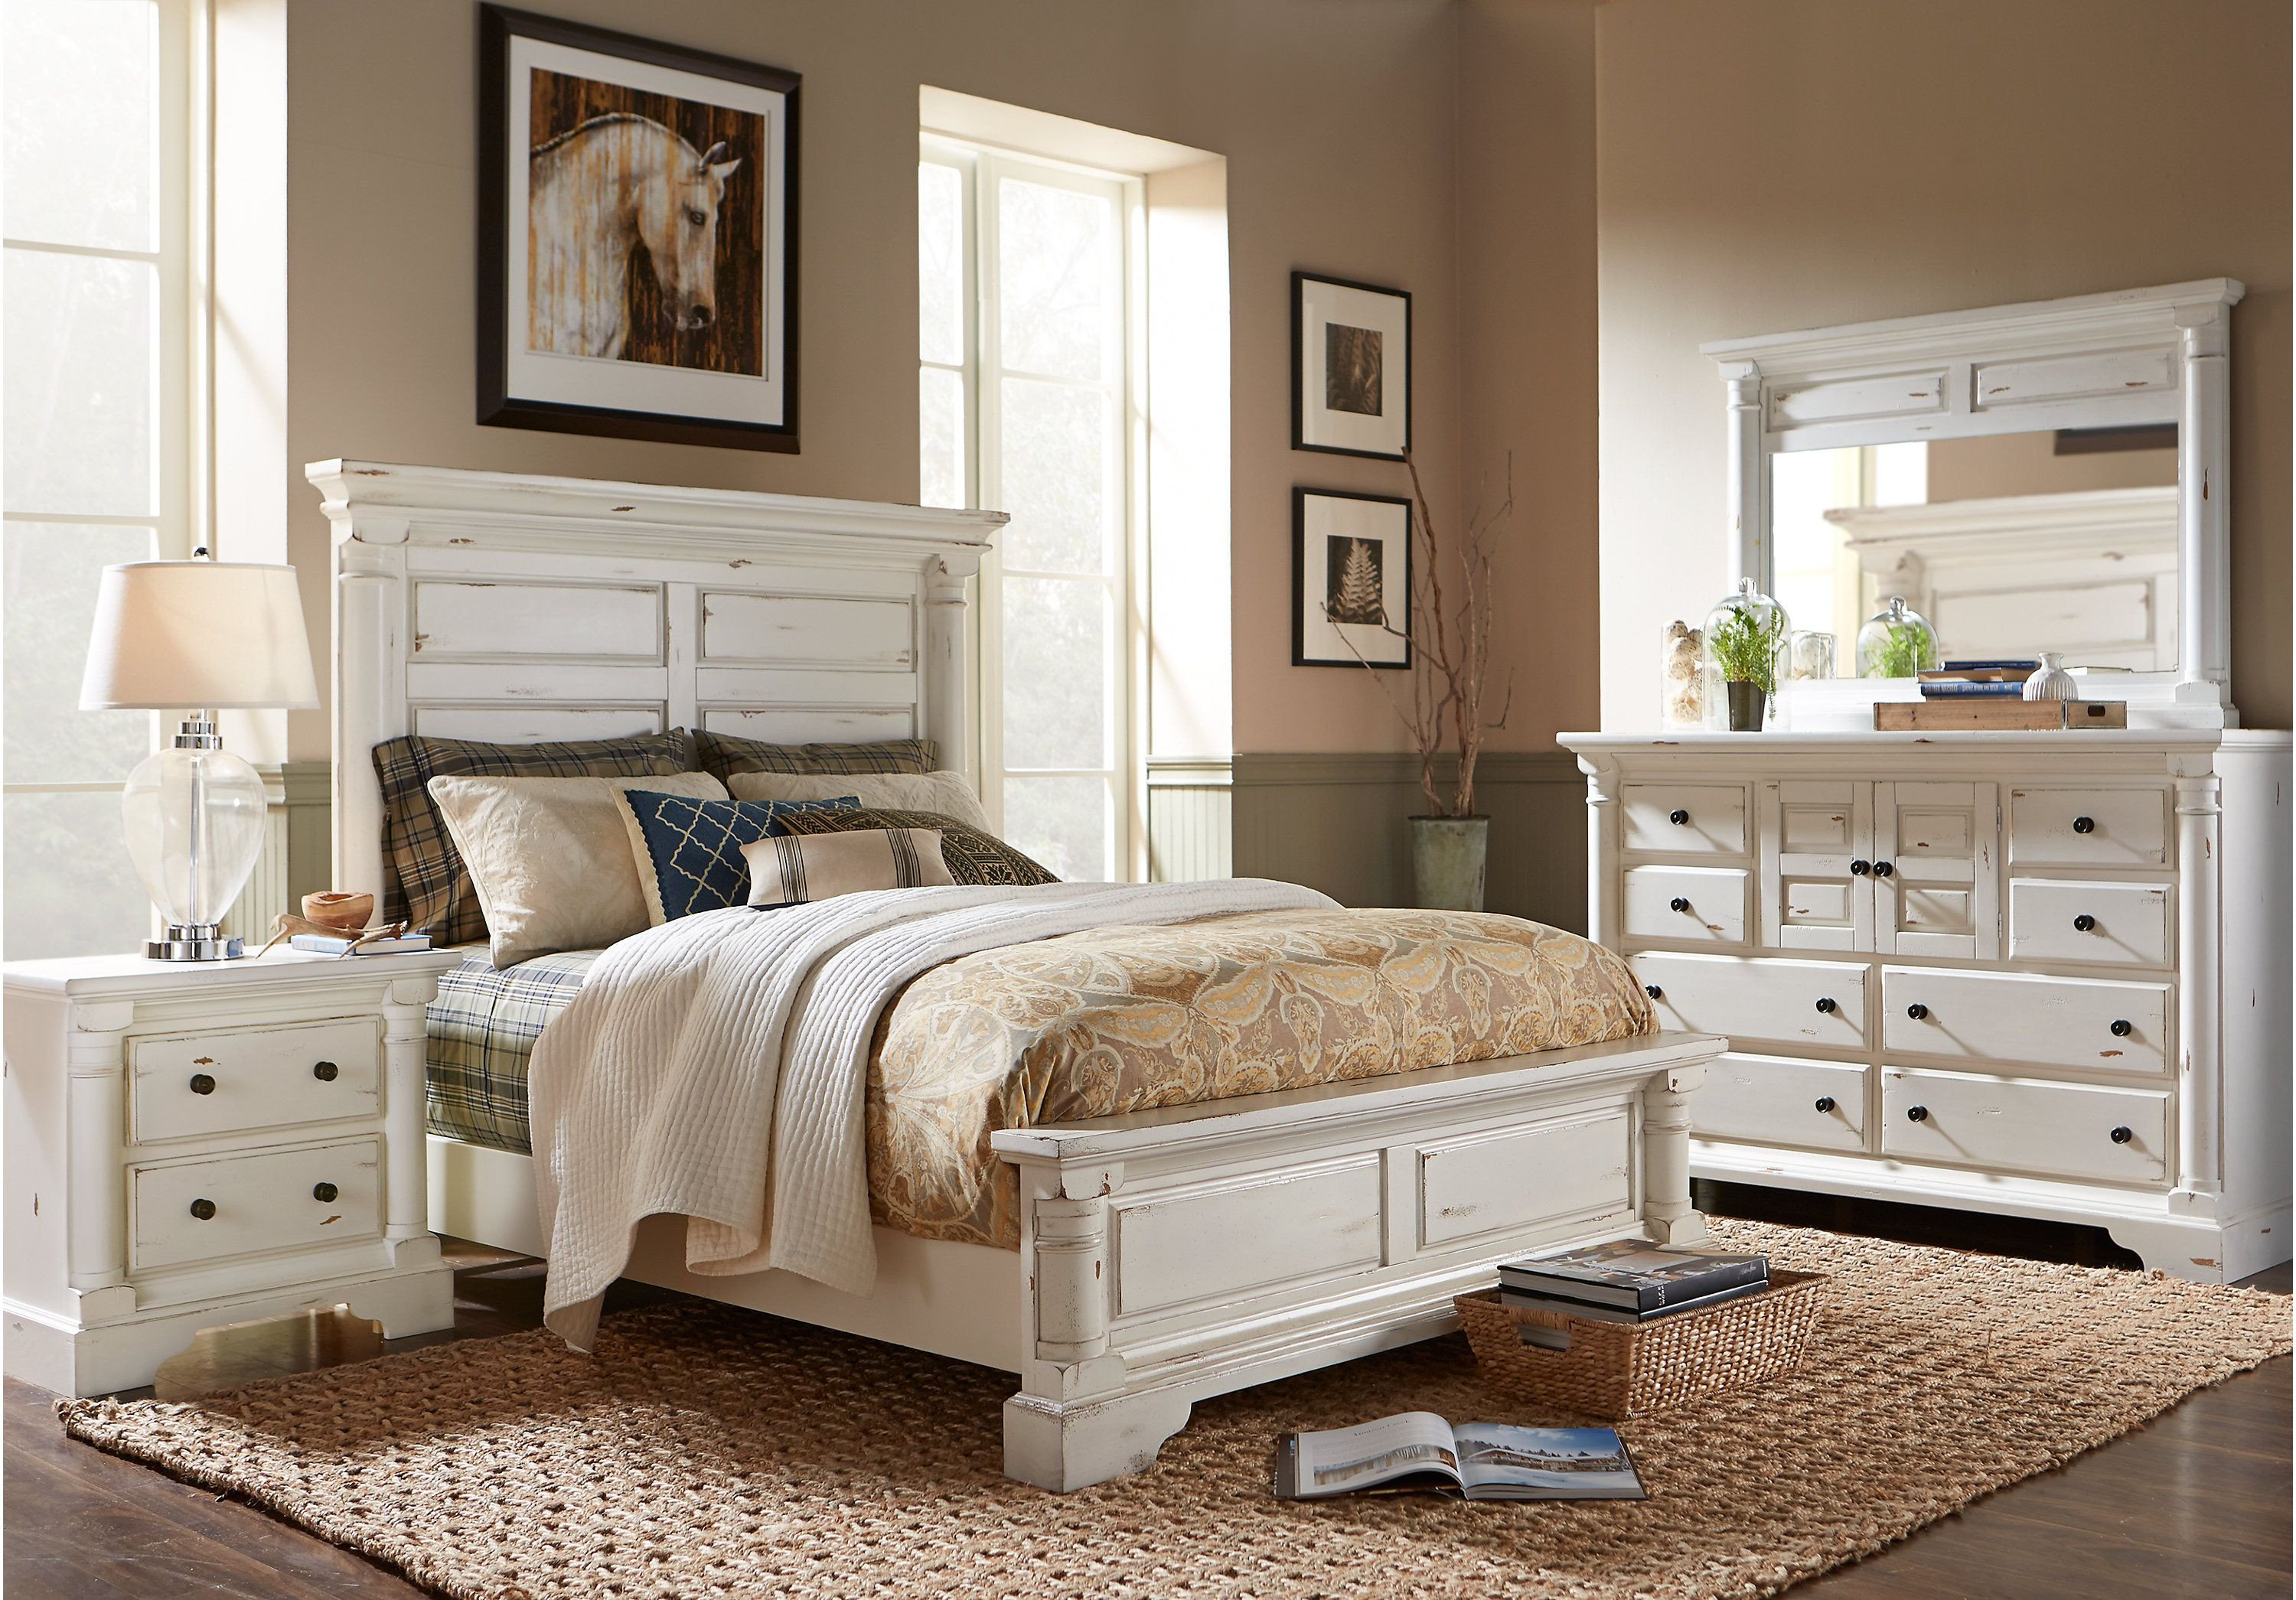 King Size Bedroom Set for Sale Unique Claymore Park F White 8 Pc King Panel Bedroom